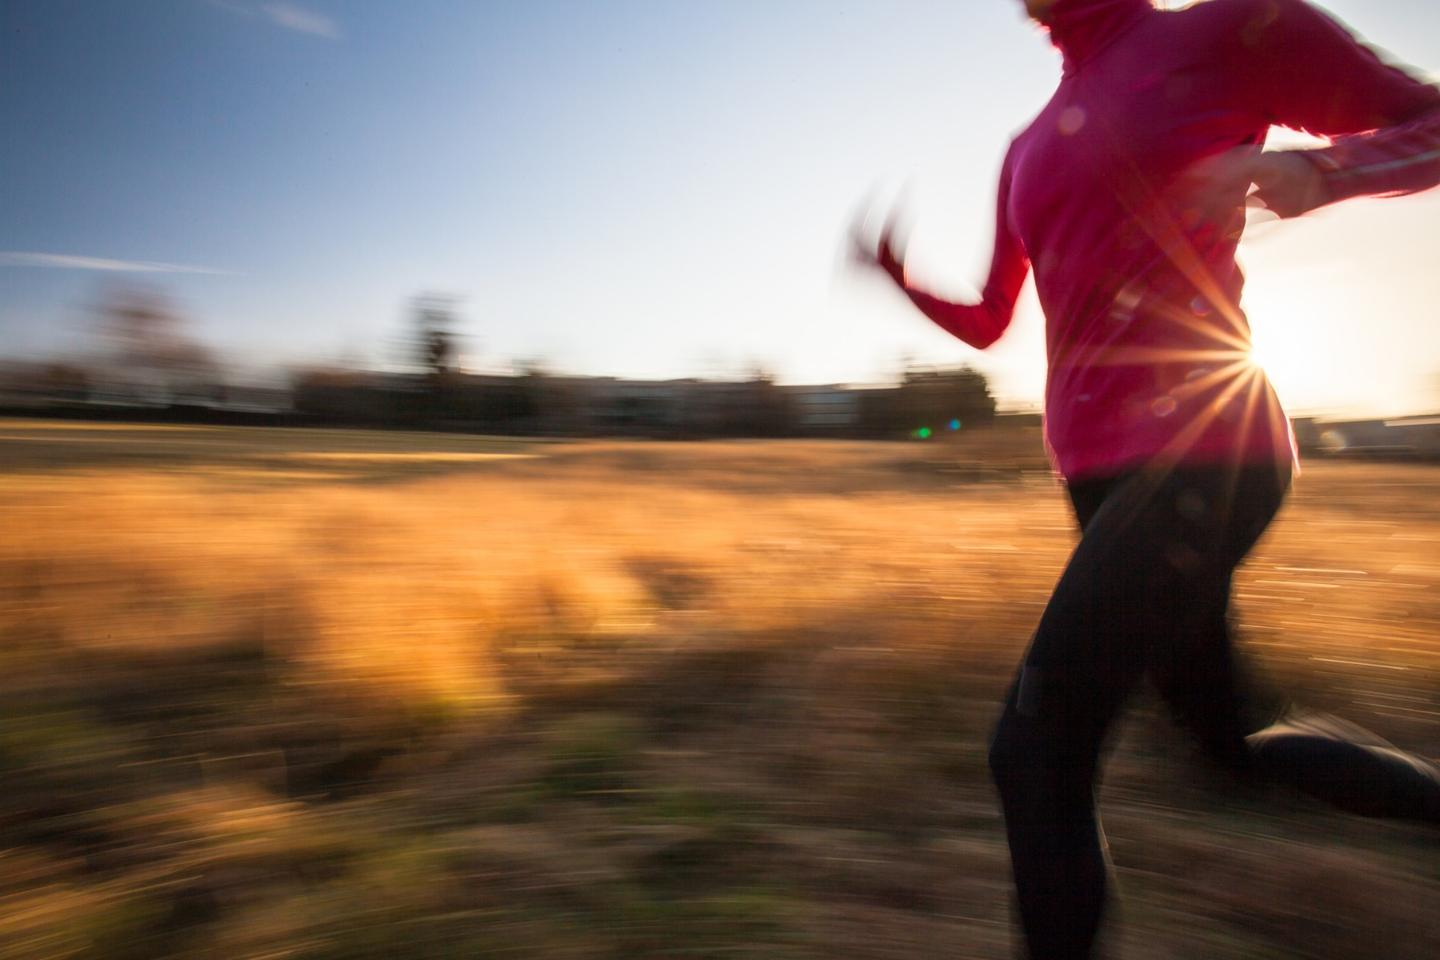 A new study bolsters the body of evidence suggesting aerobic exercise can directly reduce the negative symptoms of schizophrenia